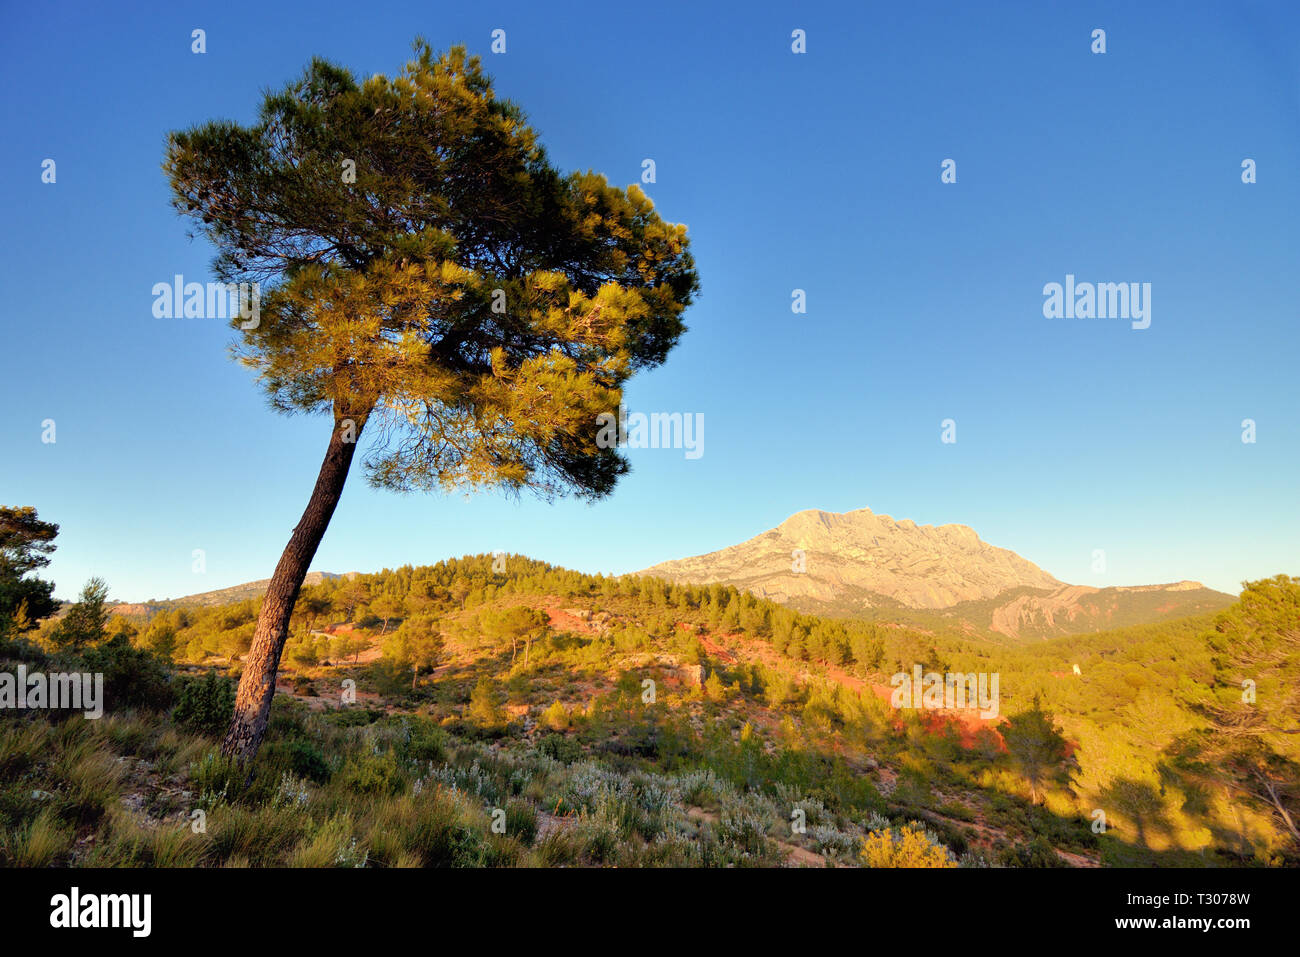 Mont Sainte-Victoire or Sainte Victoire Mountain & Pine Tree, the Peak Celebrated in the Paintings of Paul Cezanne, Aix-en-Provence Provence France - Stock Image